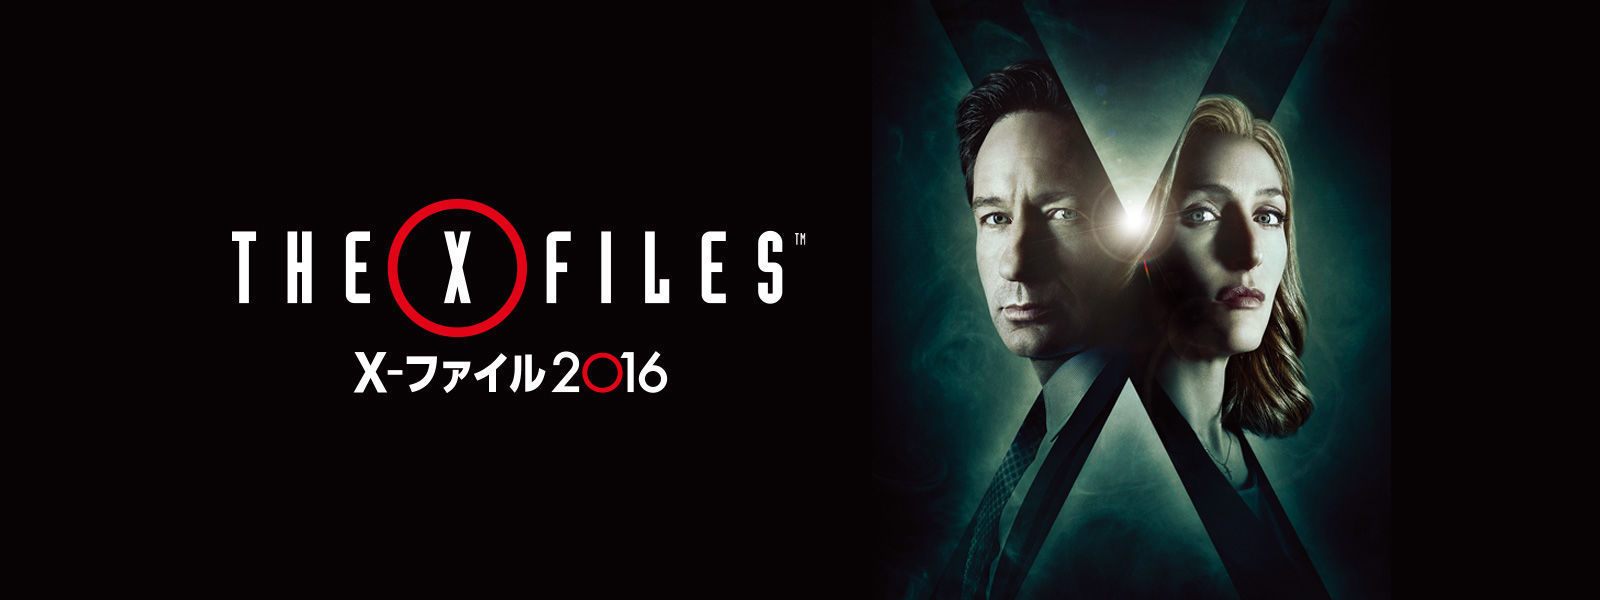 X-ファイル The X-Files Hero Object